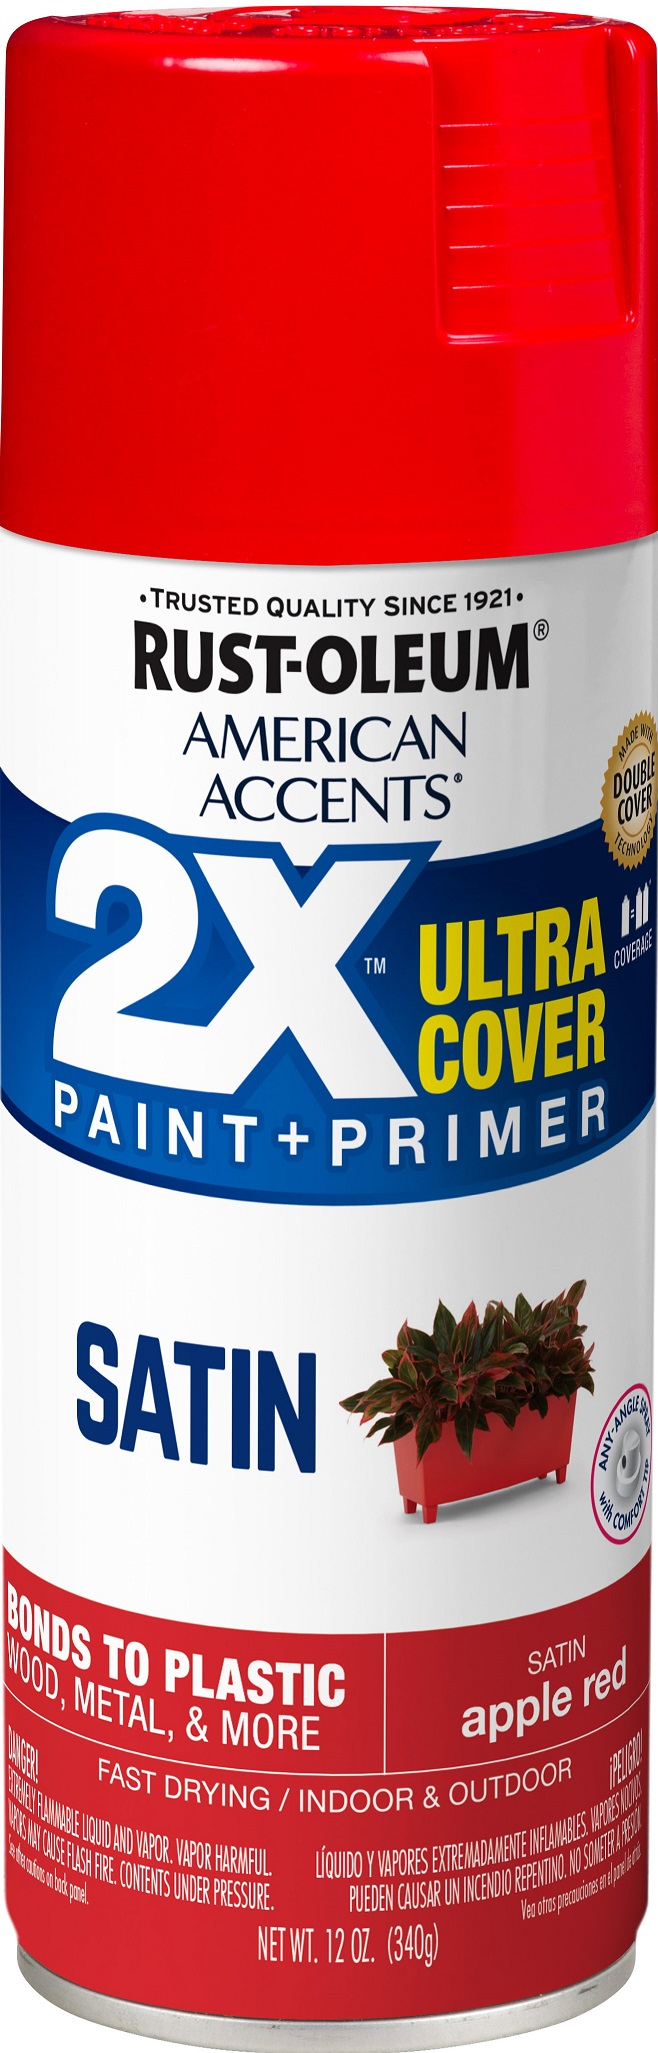 (3 Pack) Rust-Oleum American Accents Ultra Cover 2X Satin Apple Red Spray Paint and Primer in 1, 12 oz